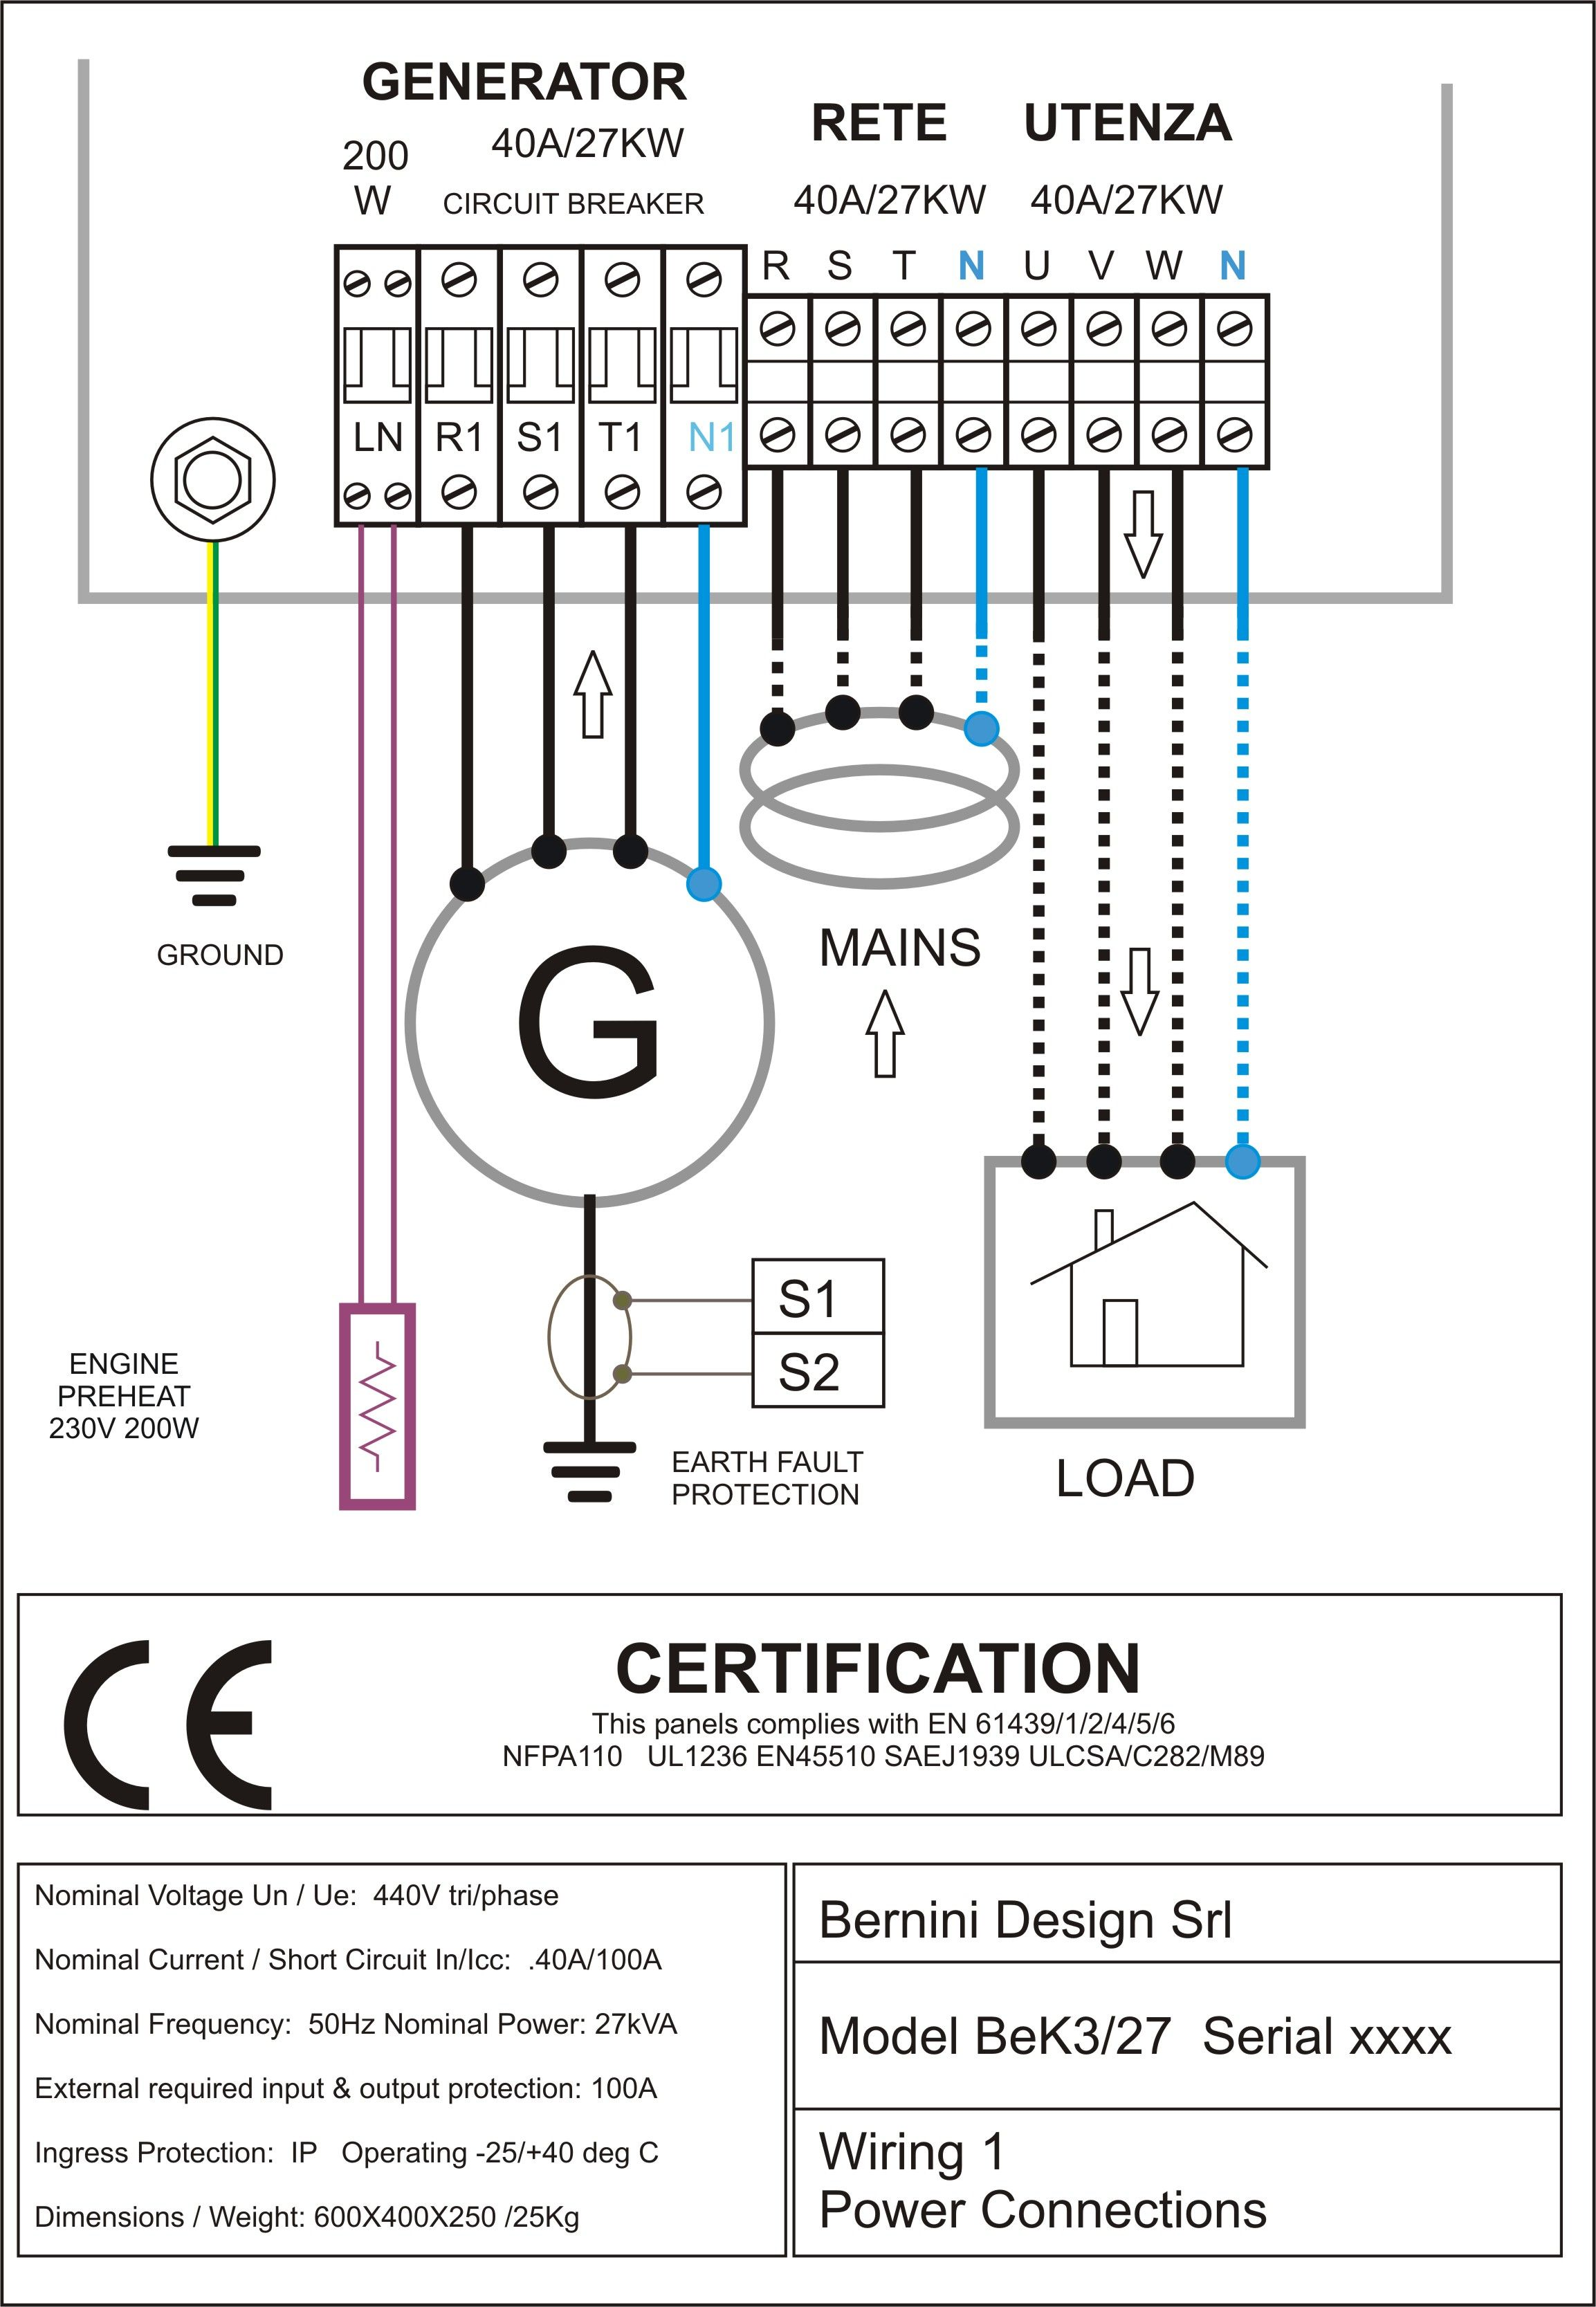 diesel generator control panel wiring diagram ac connections gr rh pinterest com cummins diesel generator wiring diagram cummins diesel generator wiring diagram